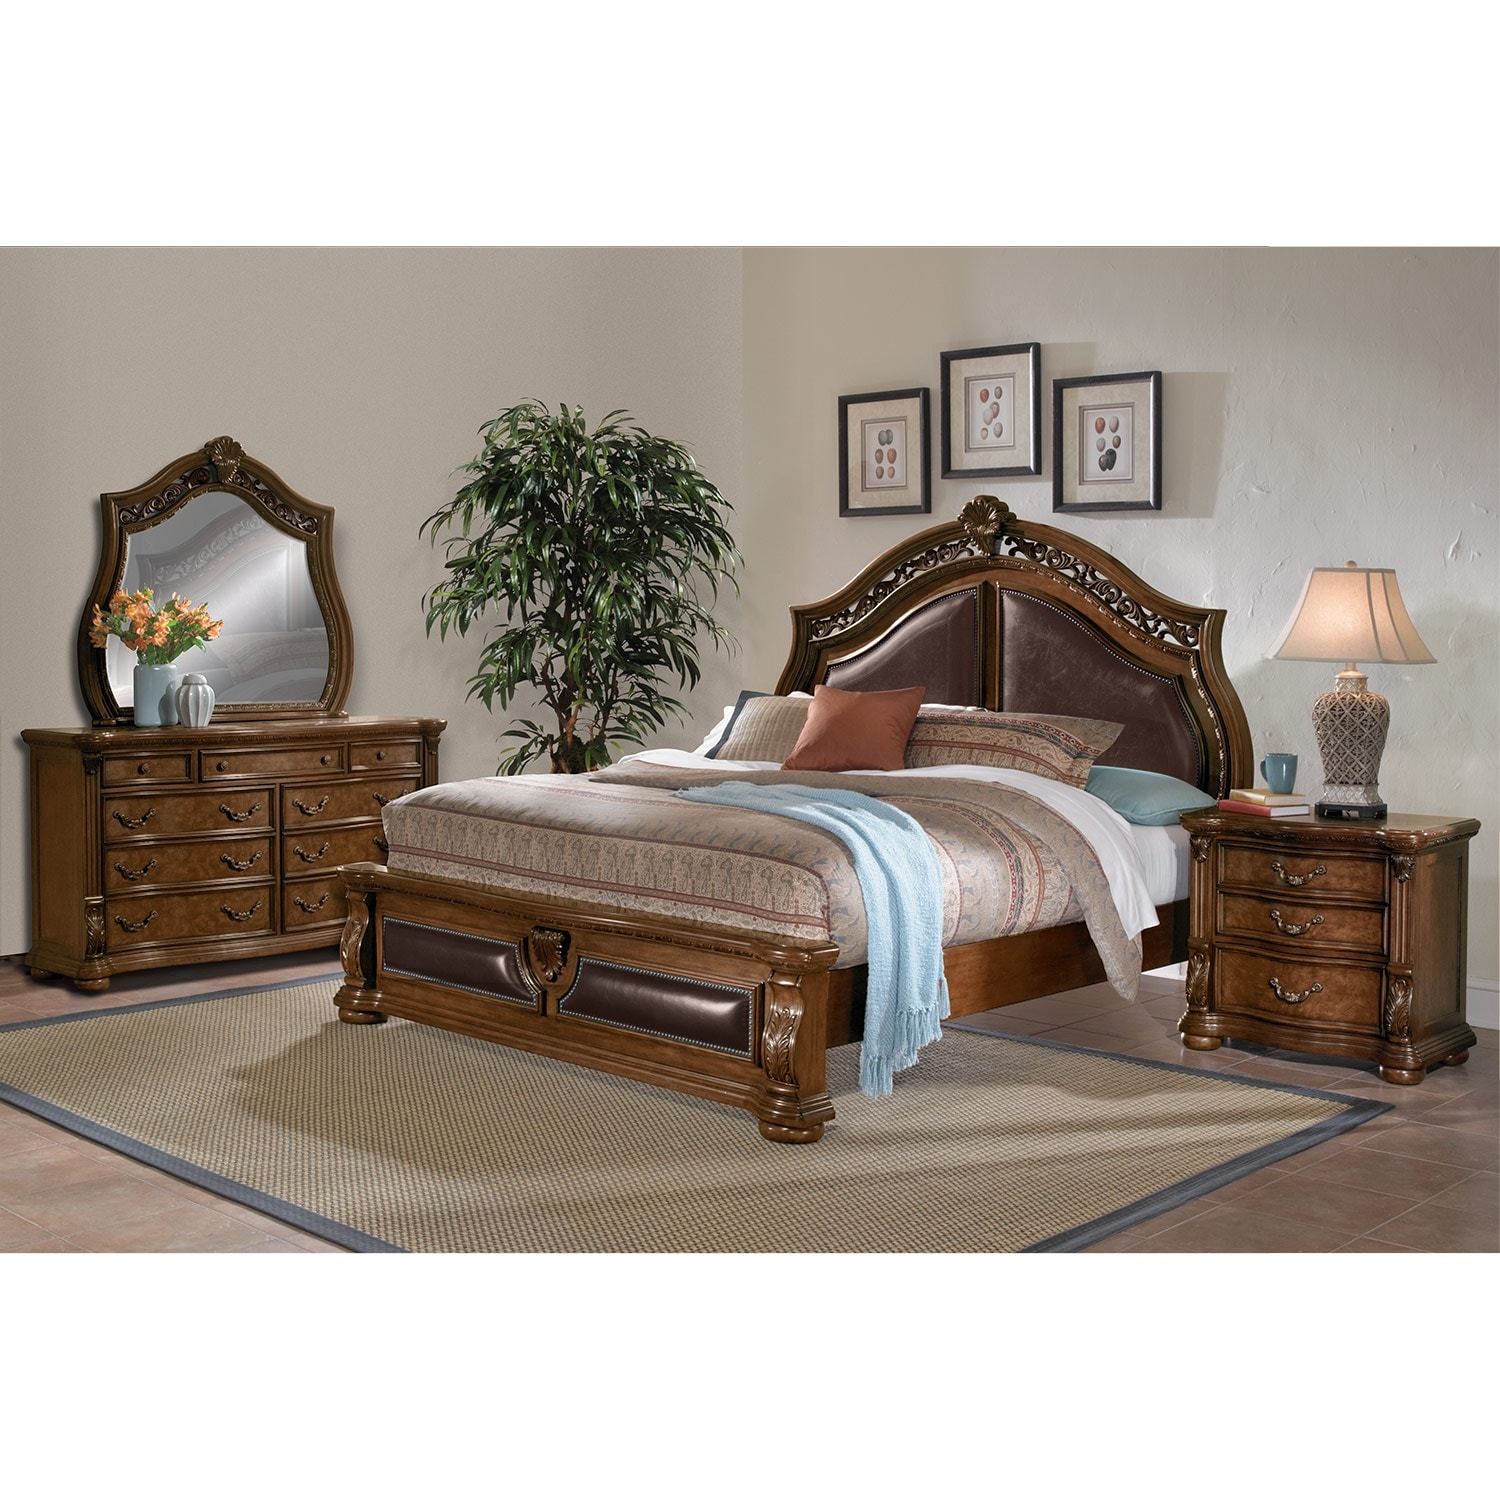 Morocco 6 Pc King Bedroom American Signature Furniture